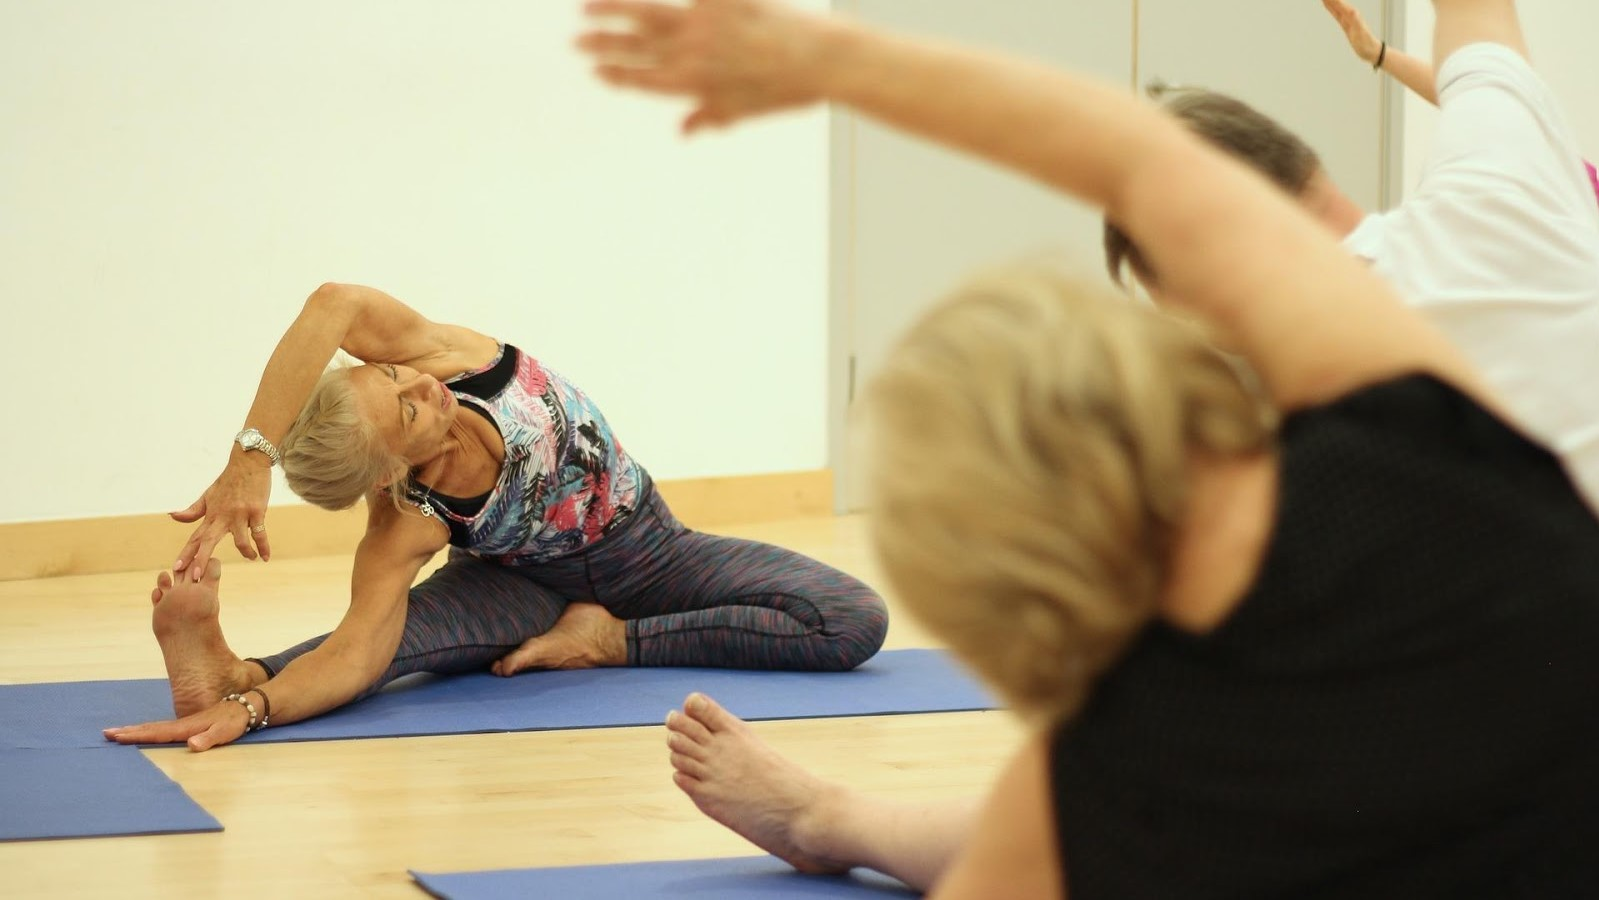 Stretching for wellness as an affordable option for those living with breast cancer